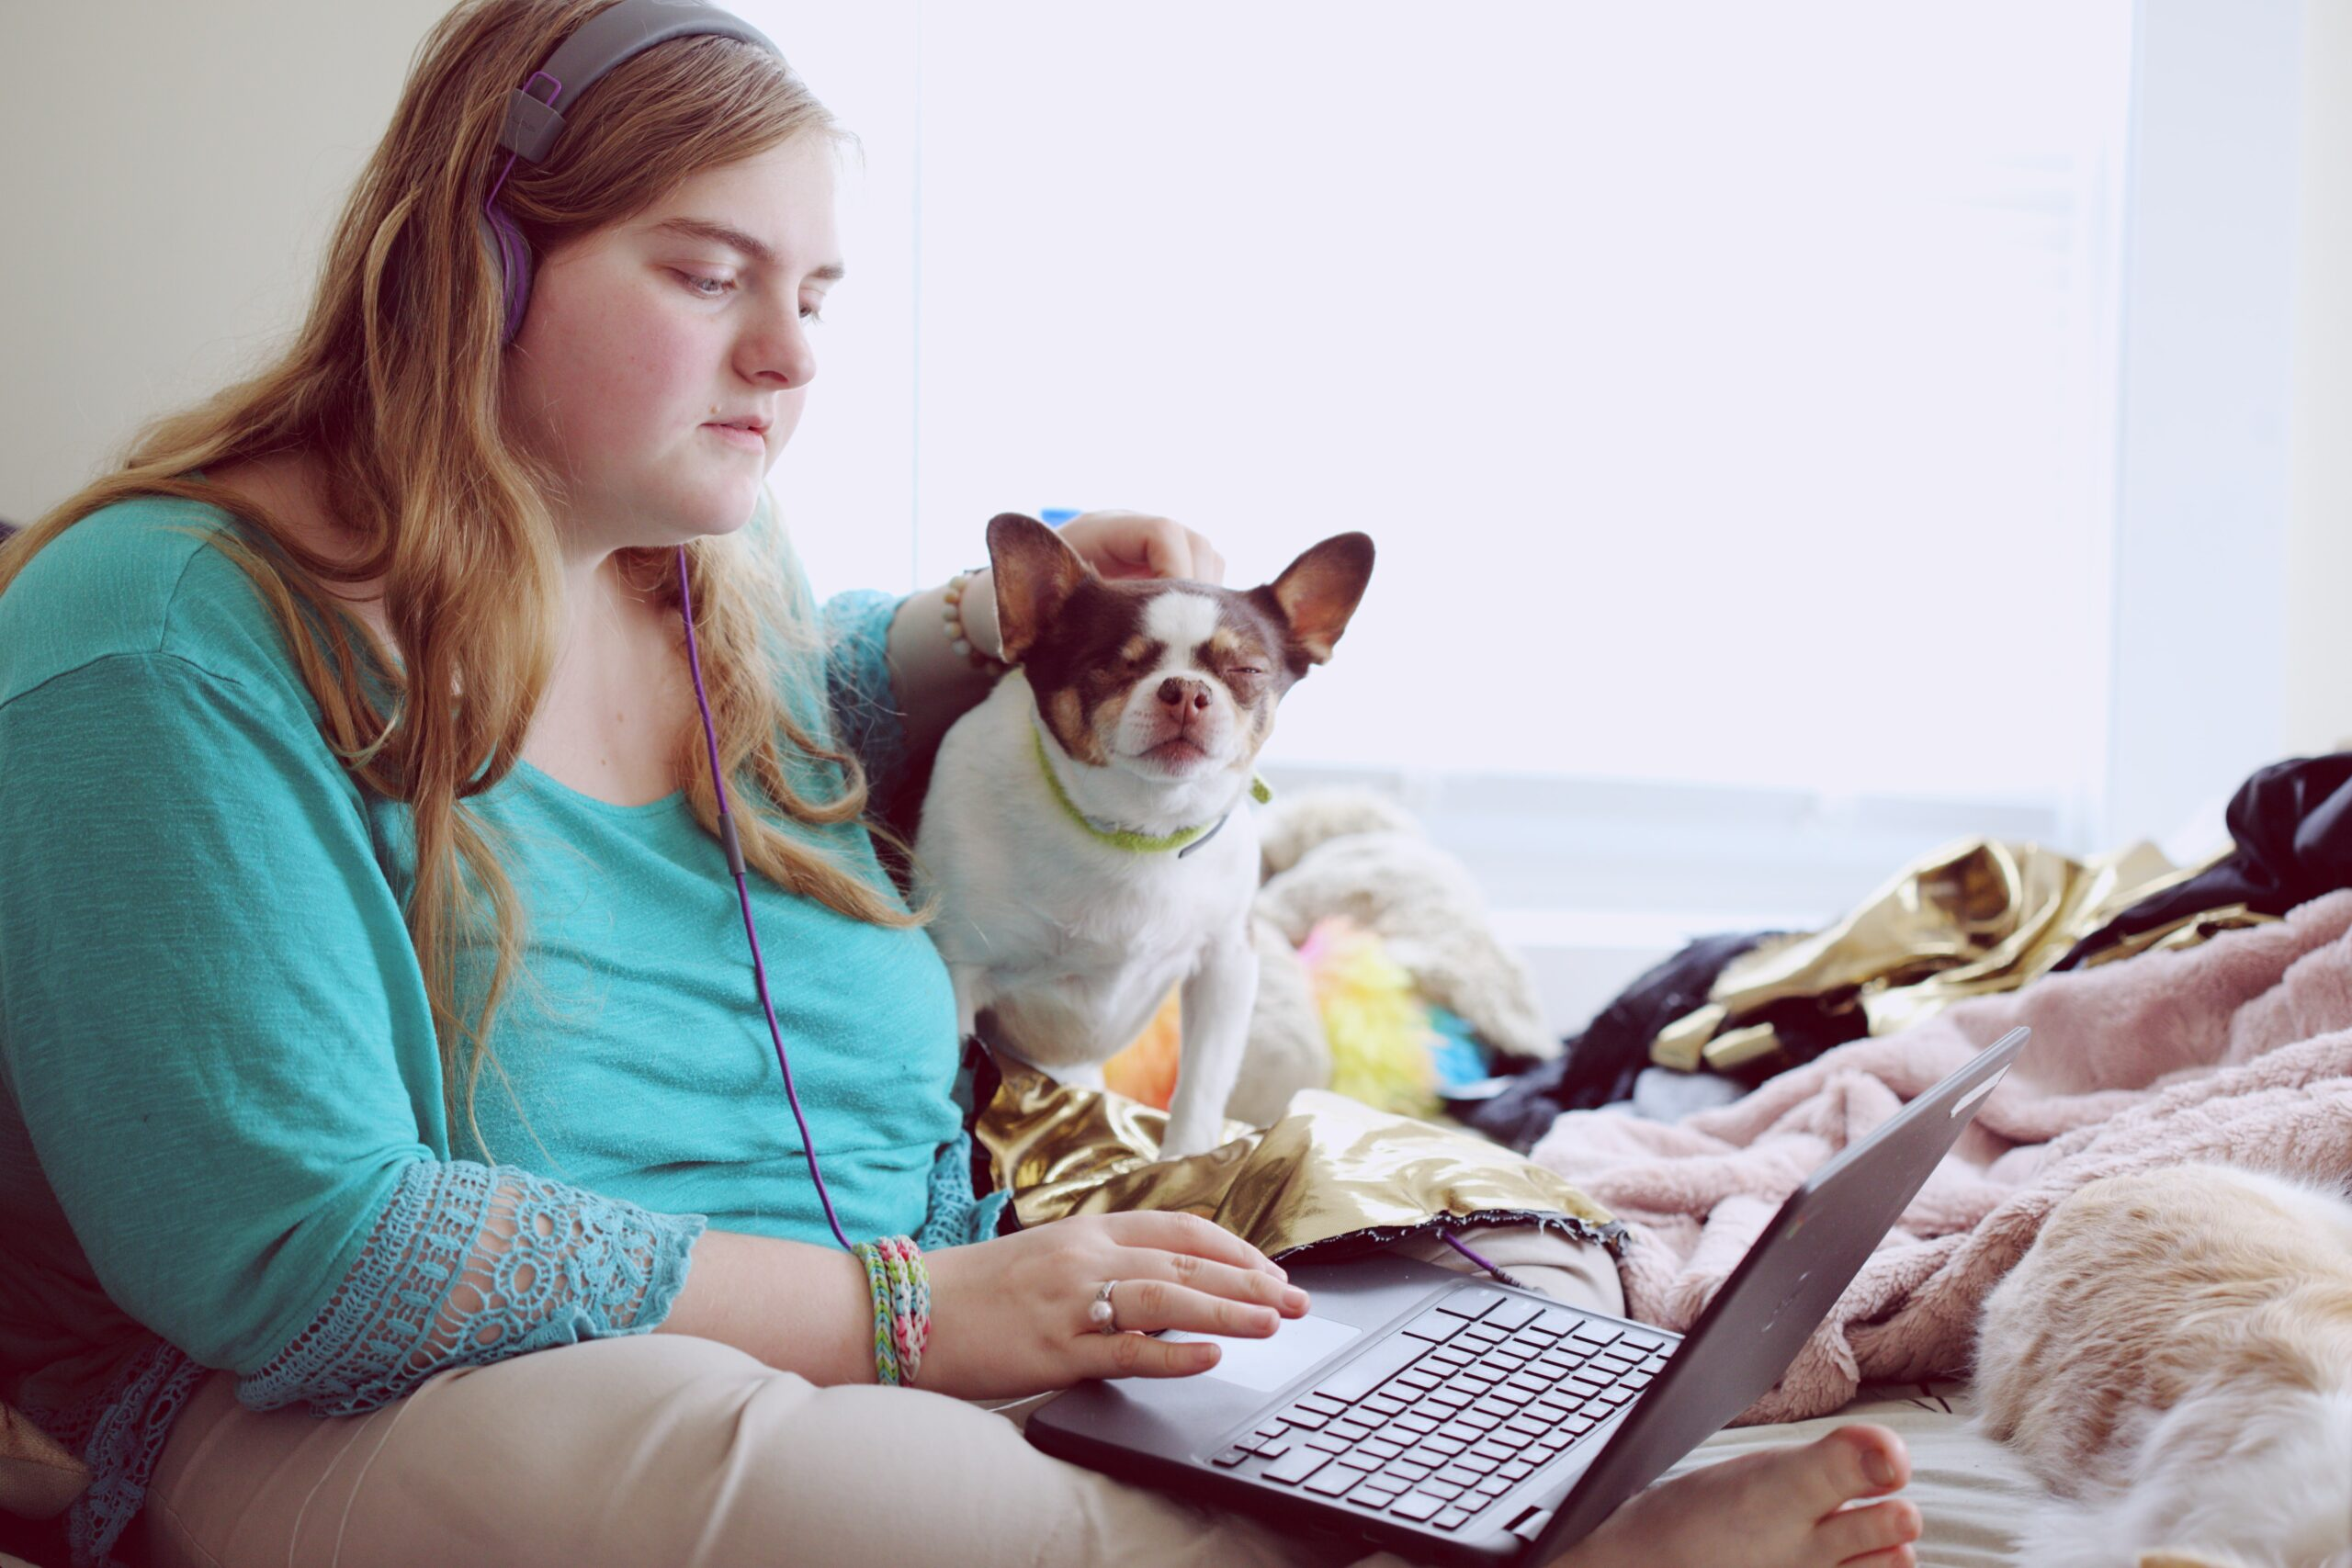 A person wearing headphones sits on a bed. One hand is petting a small dog, while the other rests on a laptop that the person is looking at.